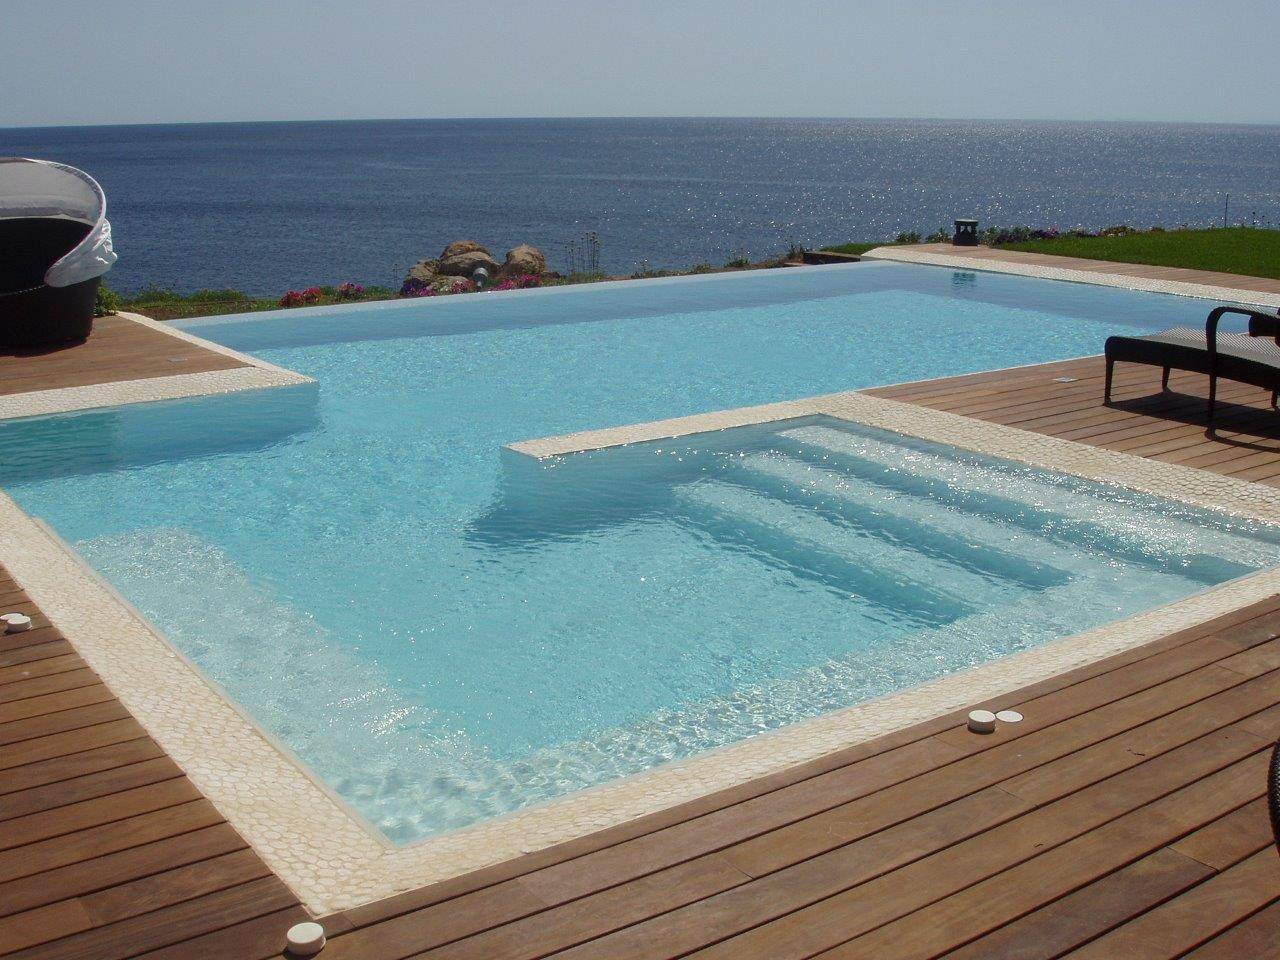 PiscinasMenorca - Salt pools - the best solution